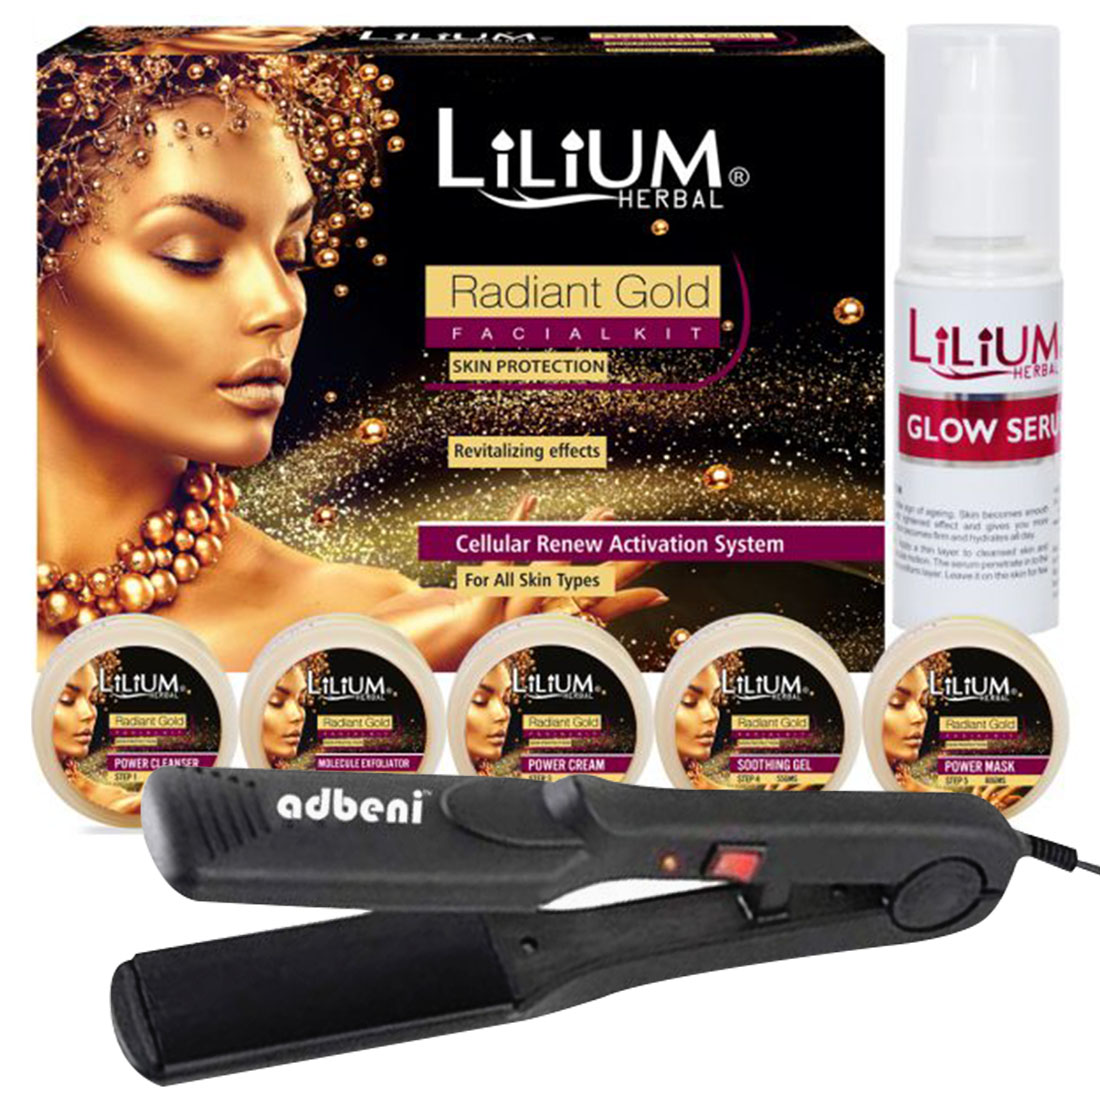 Lilium Radiant Gold Facial Kit 350g With Hair Straightener- Pack of 2- (GC851)